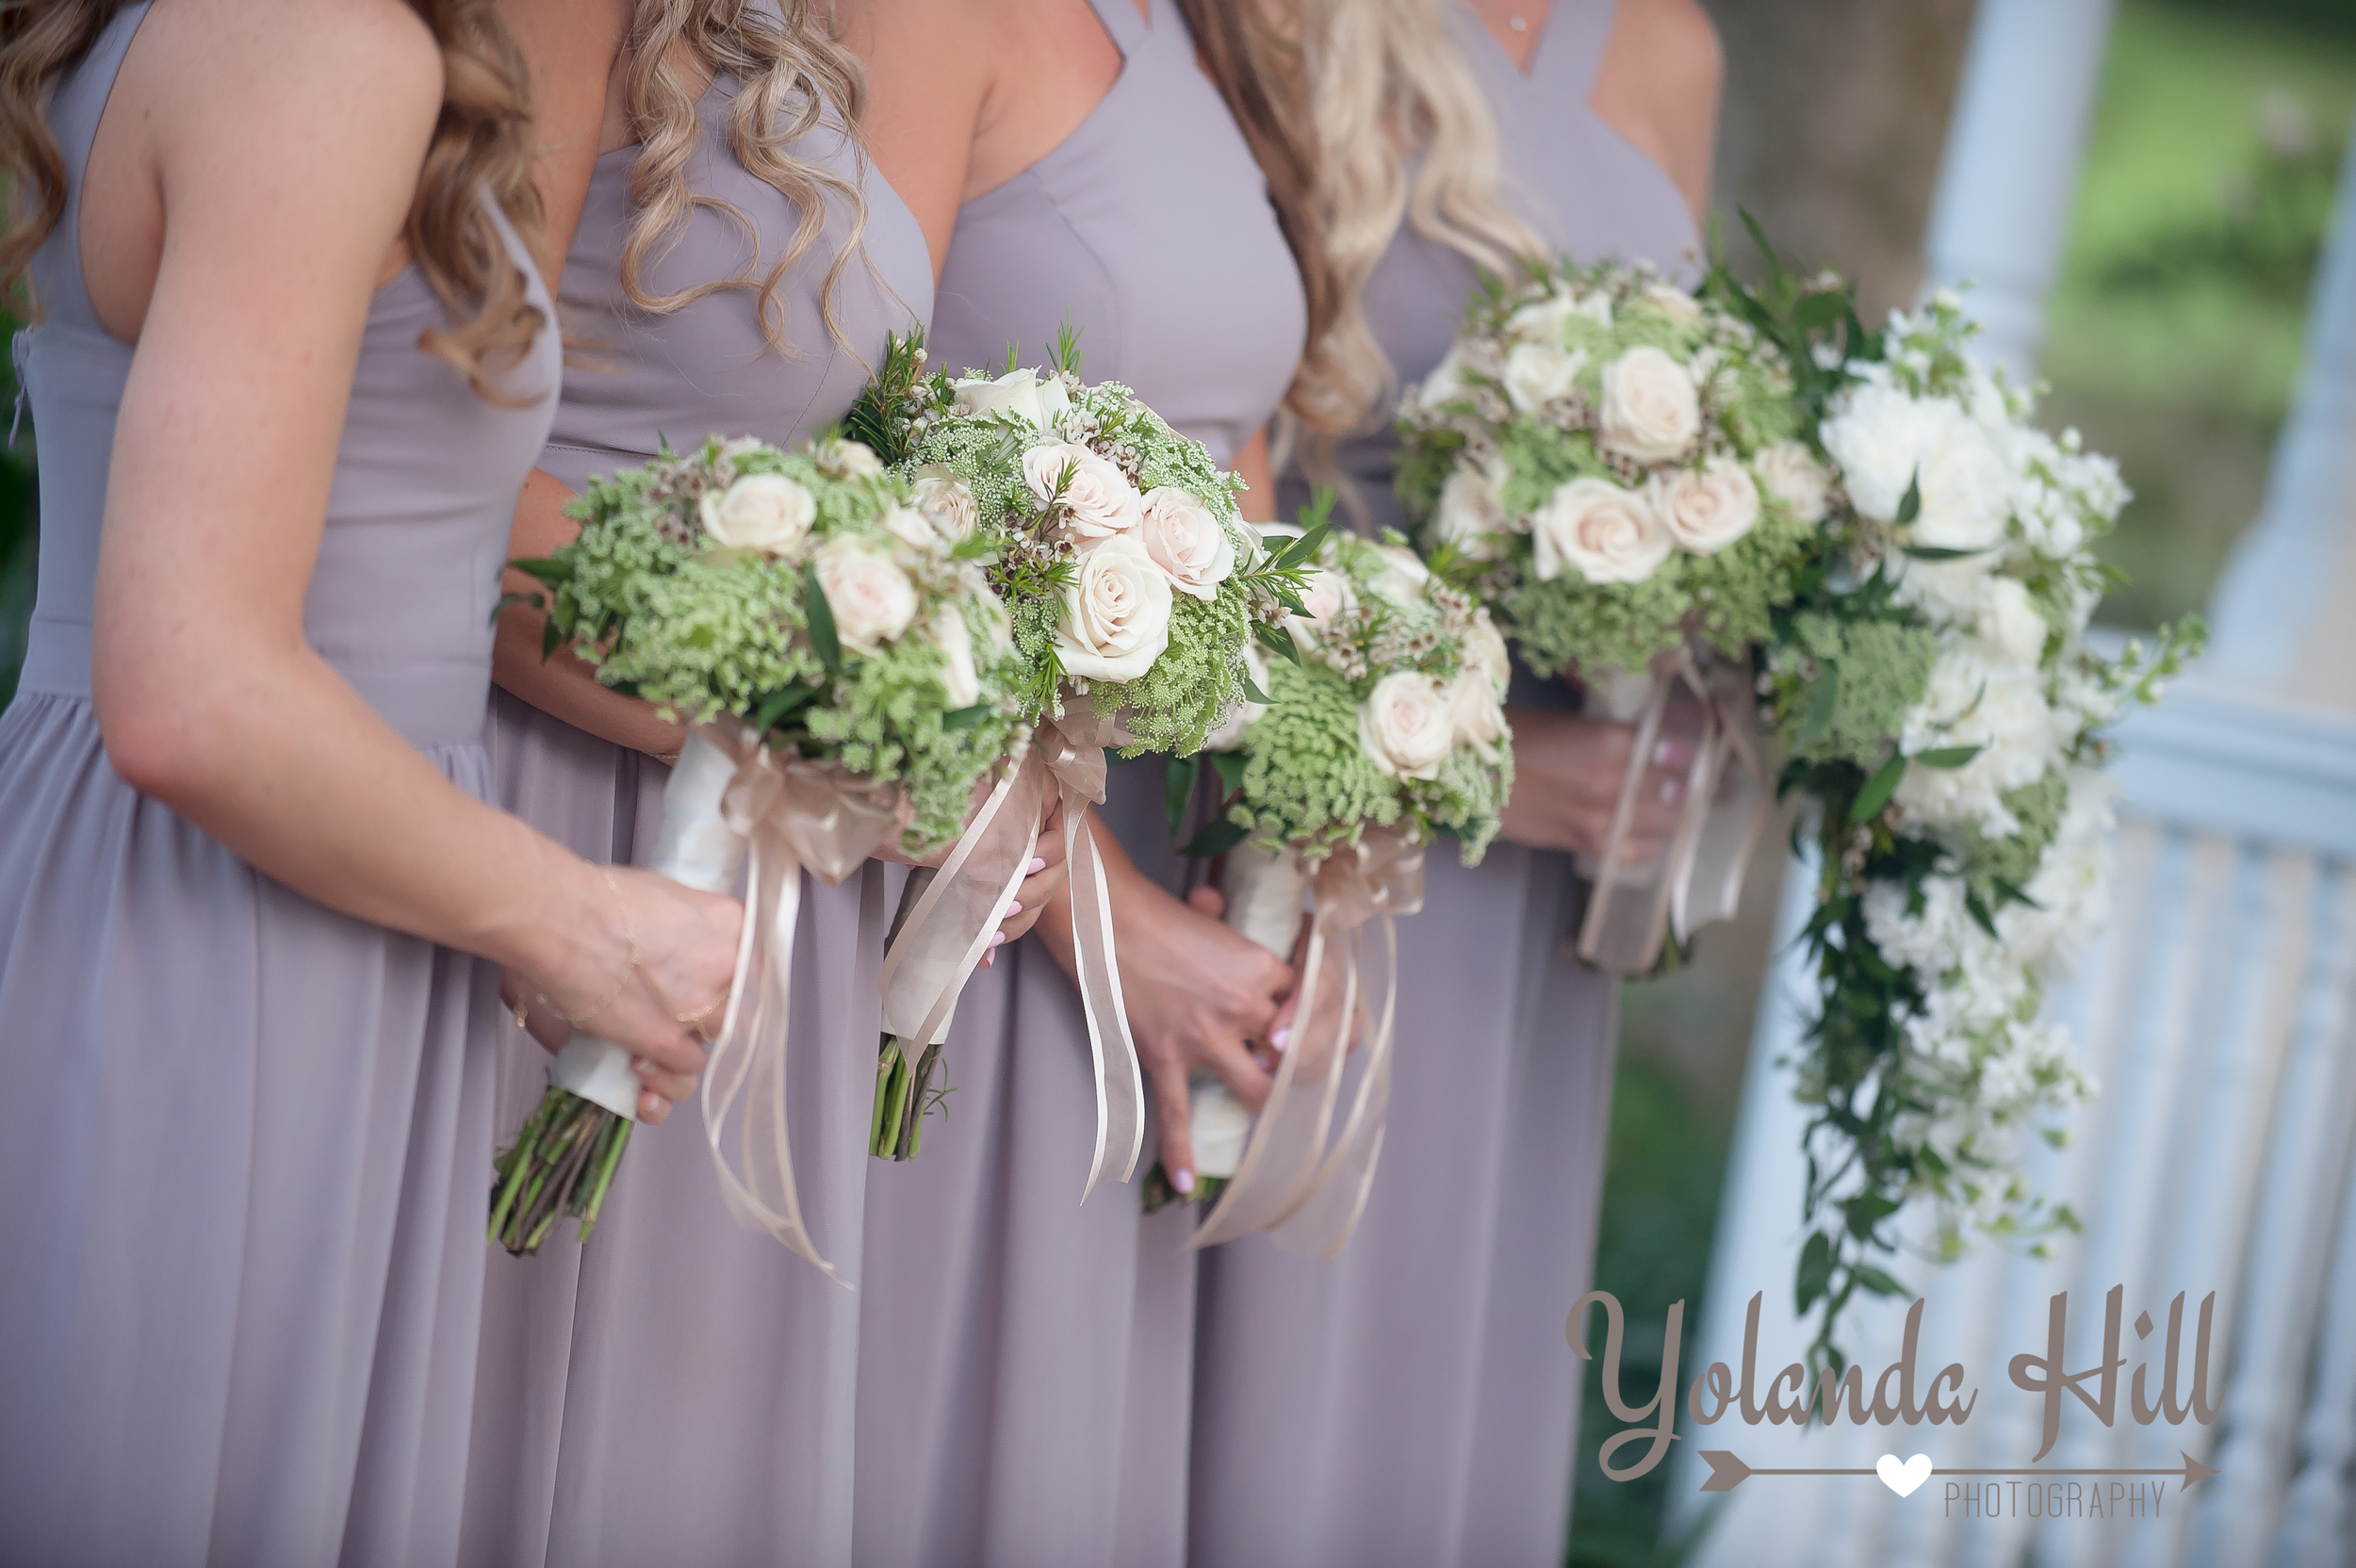 Looking for an amazing florist check out Creations by Blanca http://floralcreationsbyblanca.com/